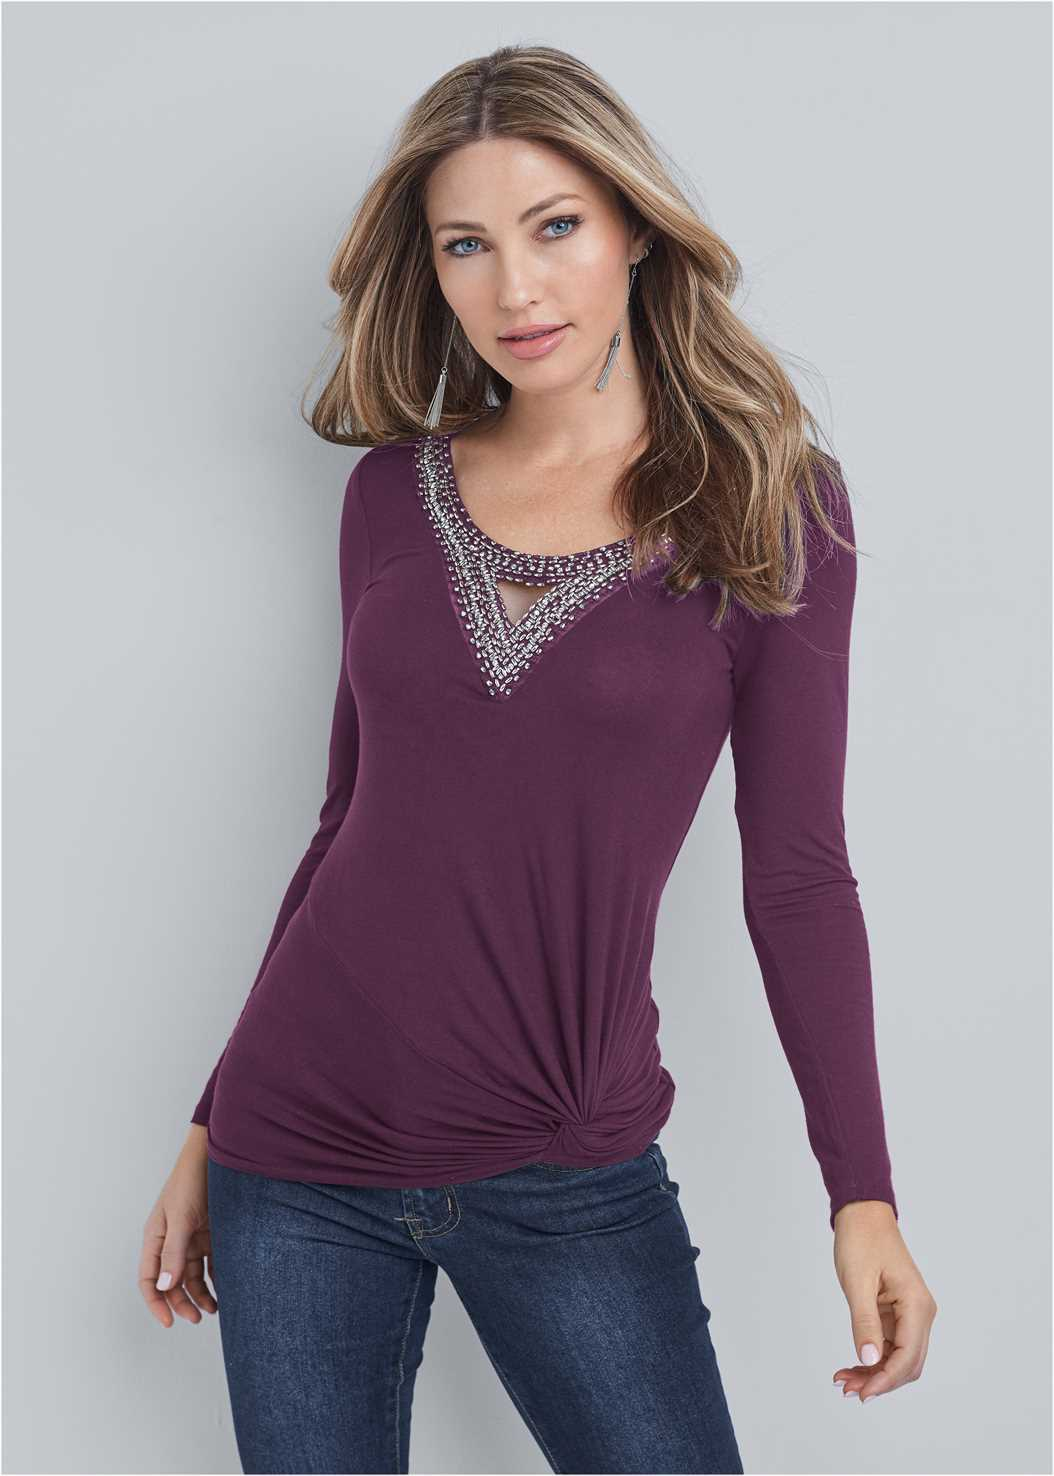 Embellished Knot Detail Top,Mid Rise Color Skinny Jeans,Seamless Unlined Bra,Slouchy Mid-Calf Boot